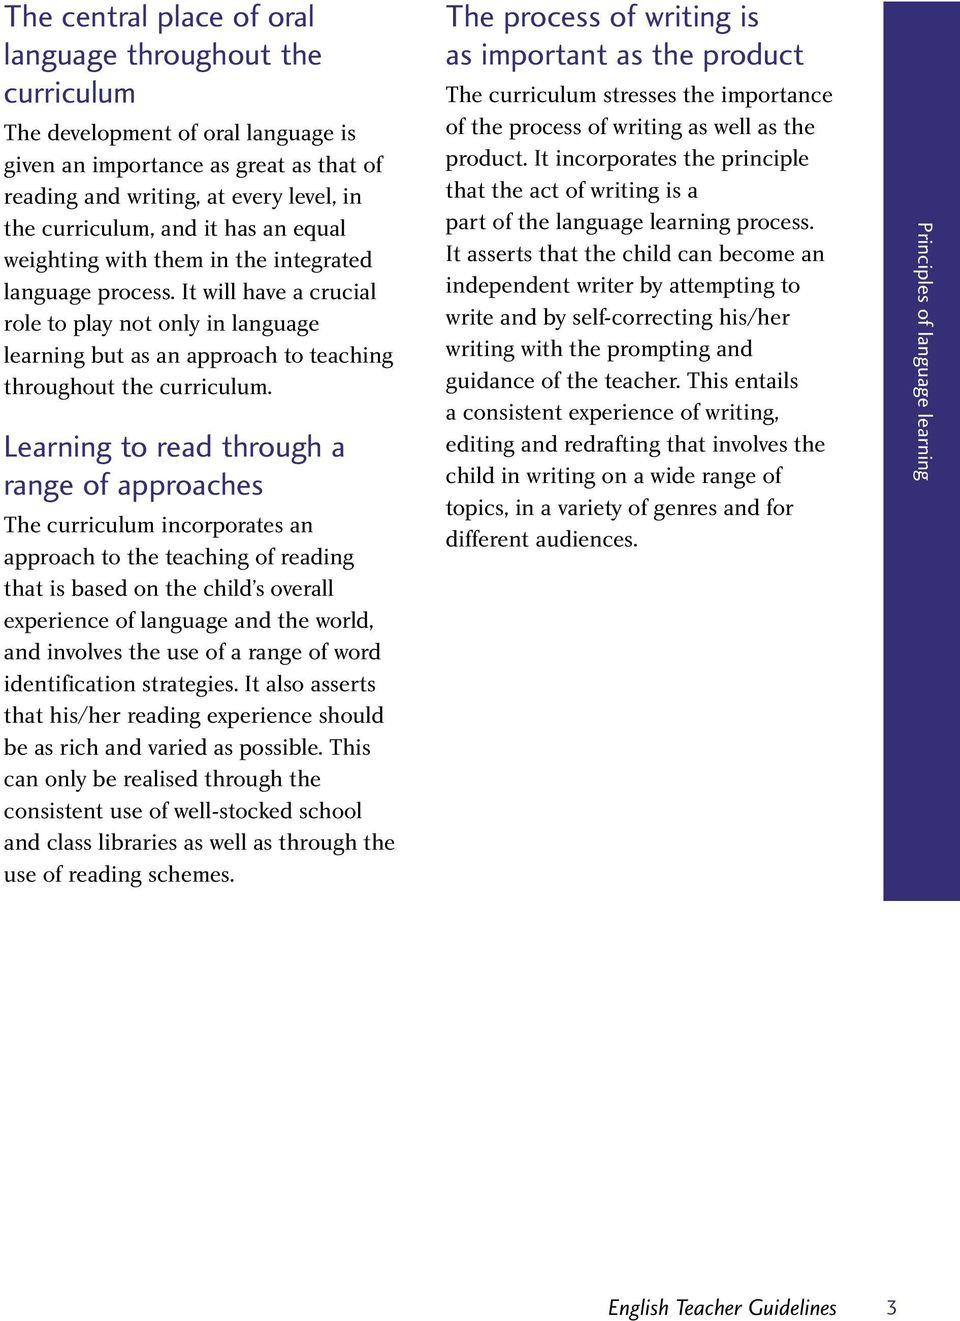 Learning to read through a range of approaches The curriculum incorporates an approach to the teaching of reading that is based on the child s overall experience of language and the world, and